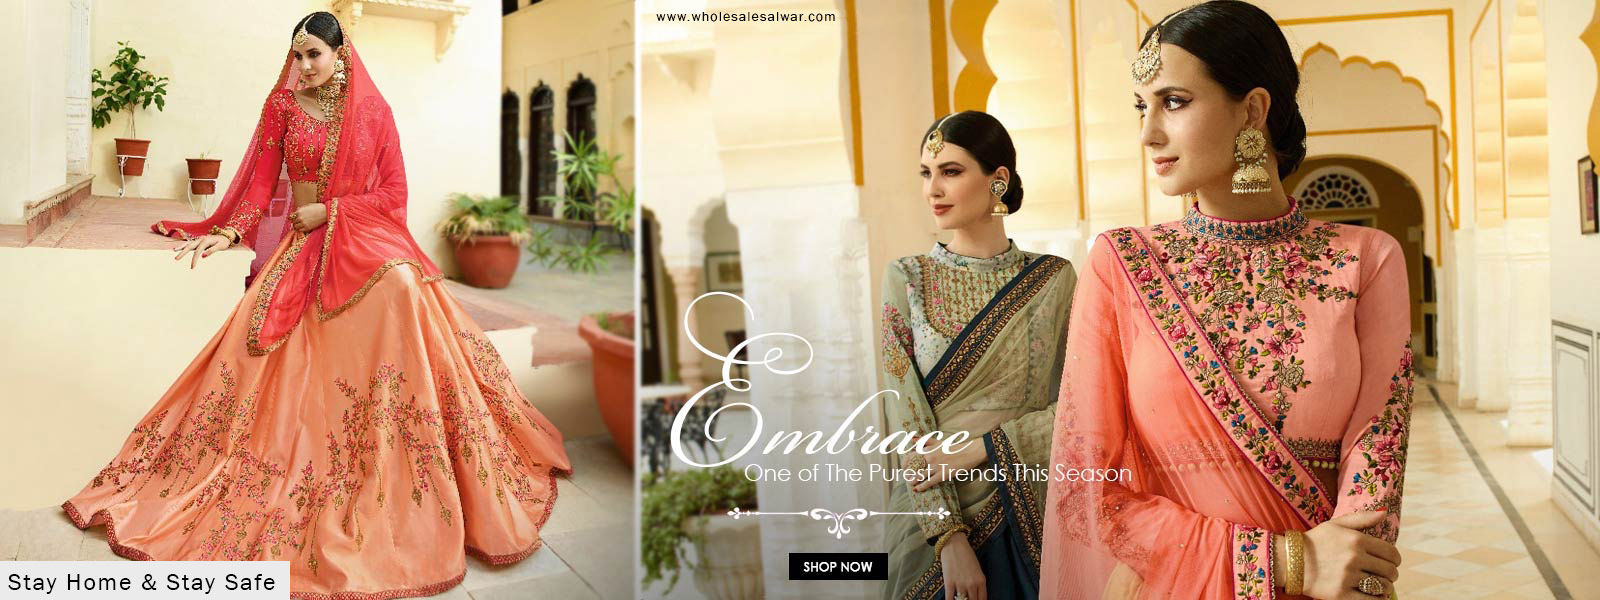 Wholesale Salwar Kameez Readymade Branded Ladies Suits Indian